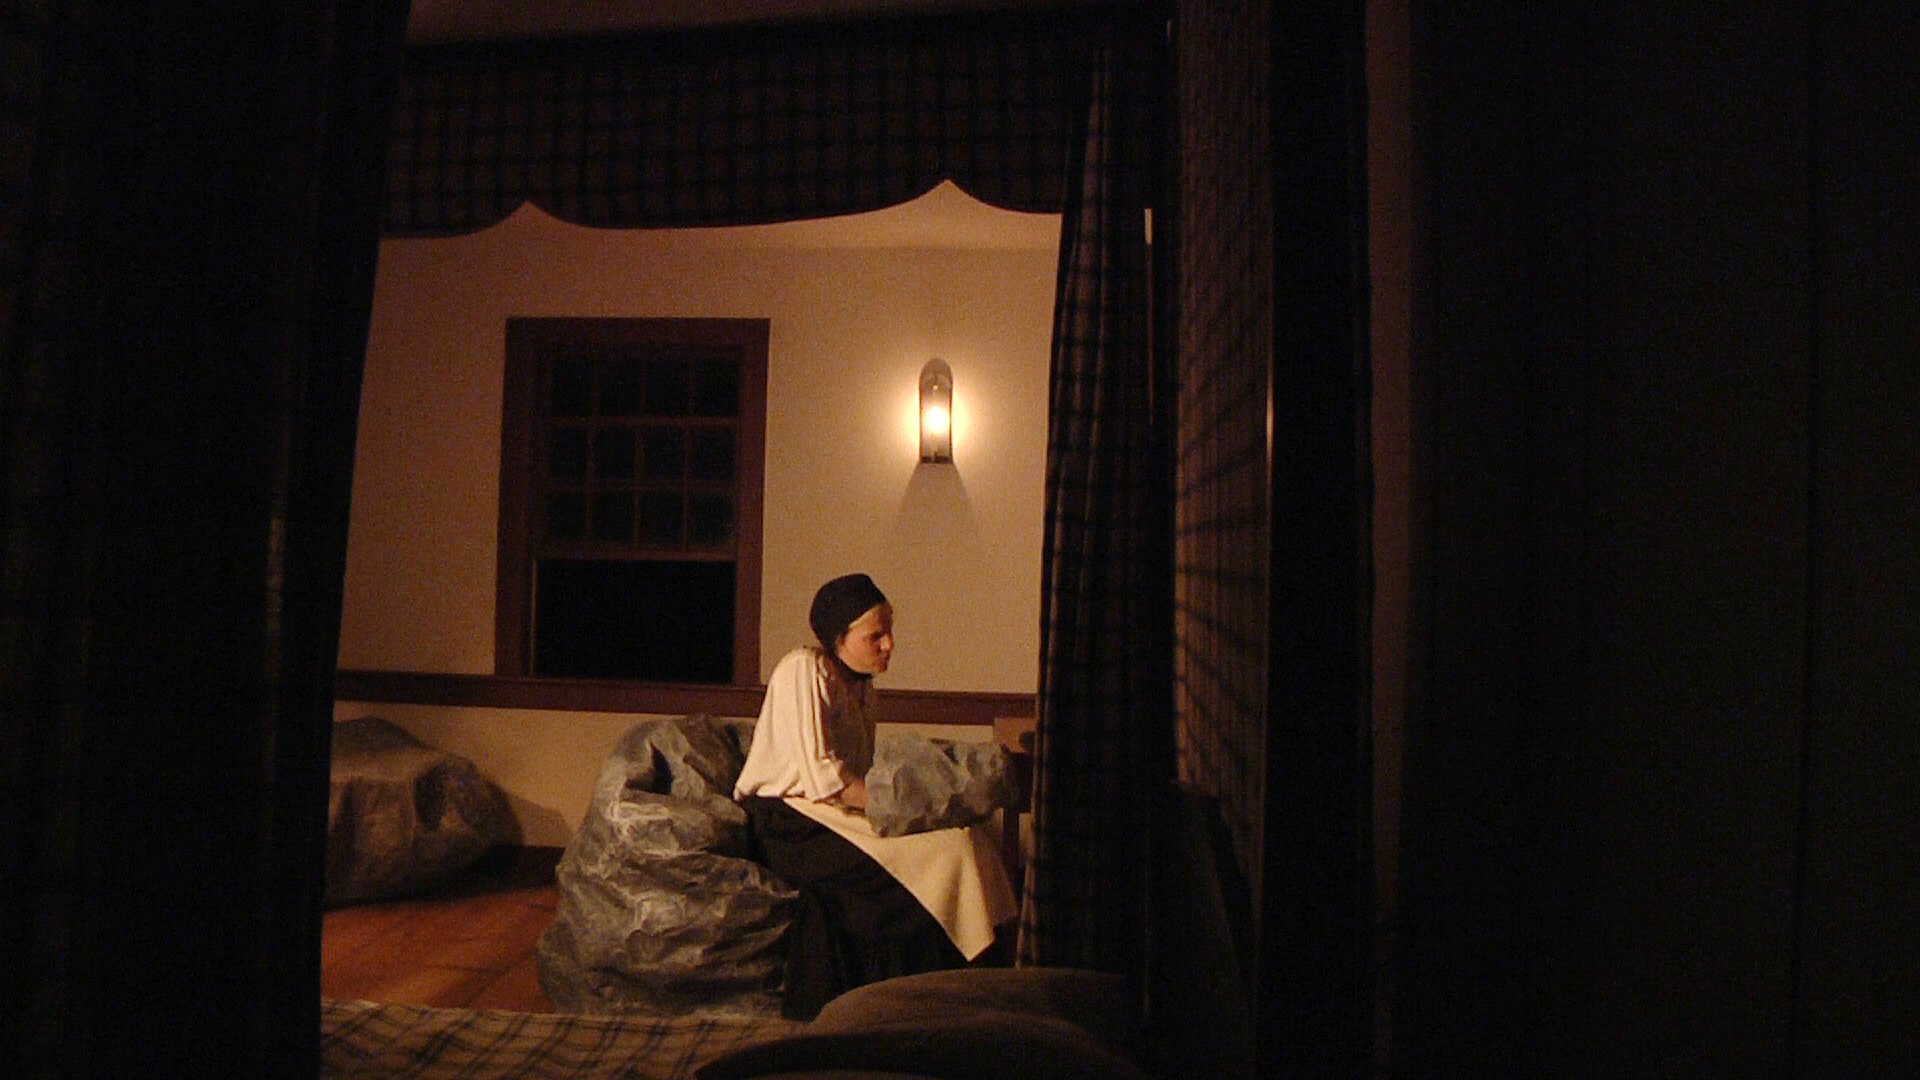 mary film still 1.jpg